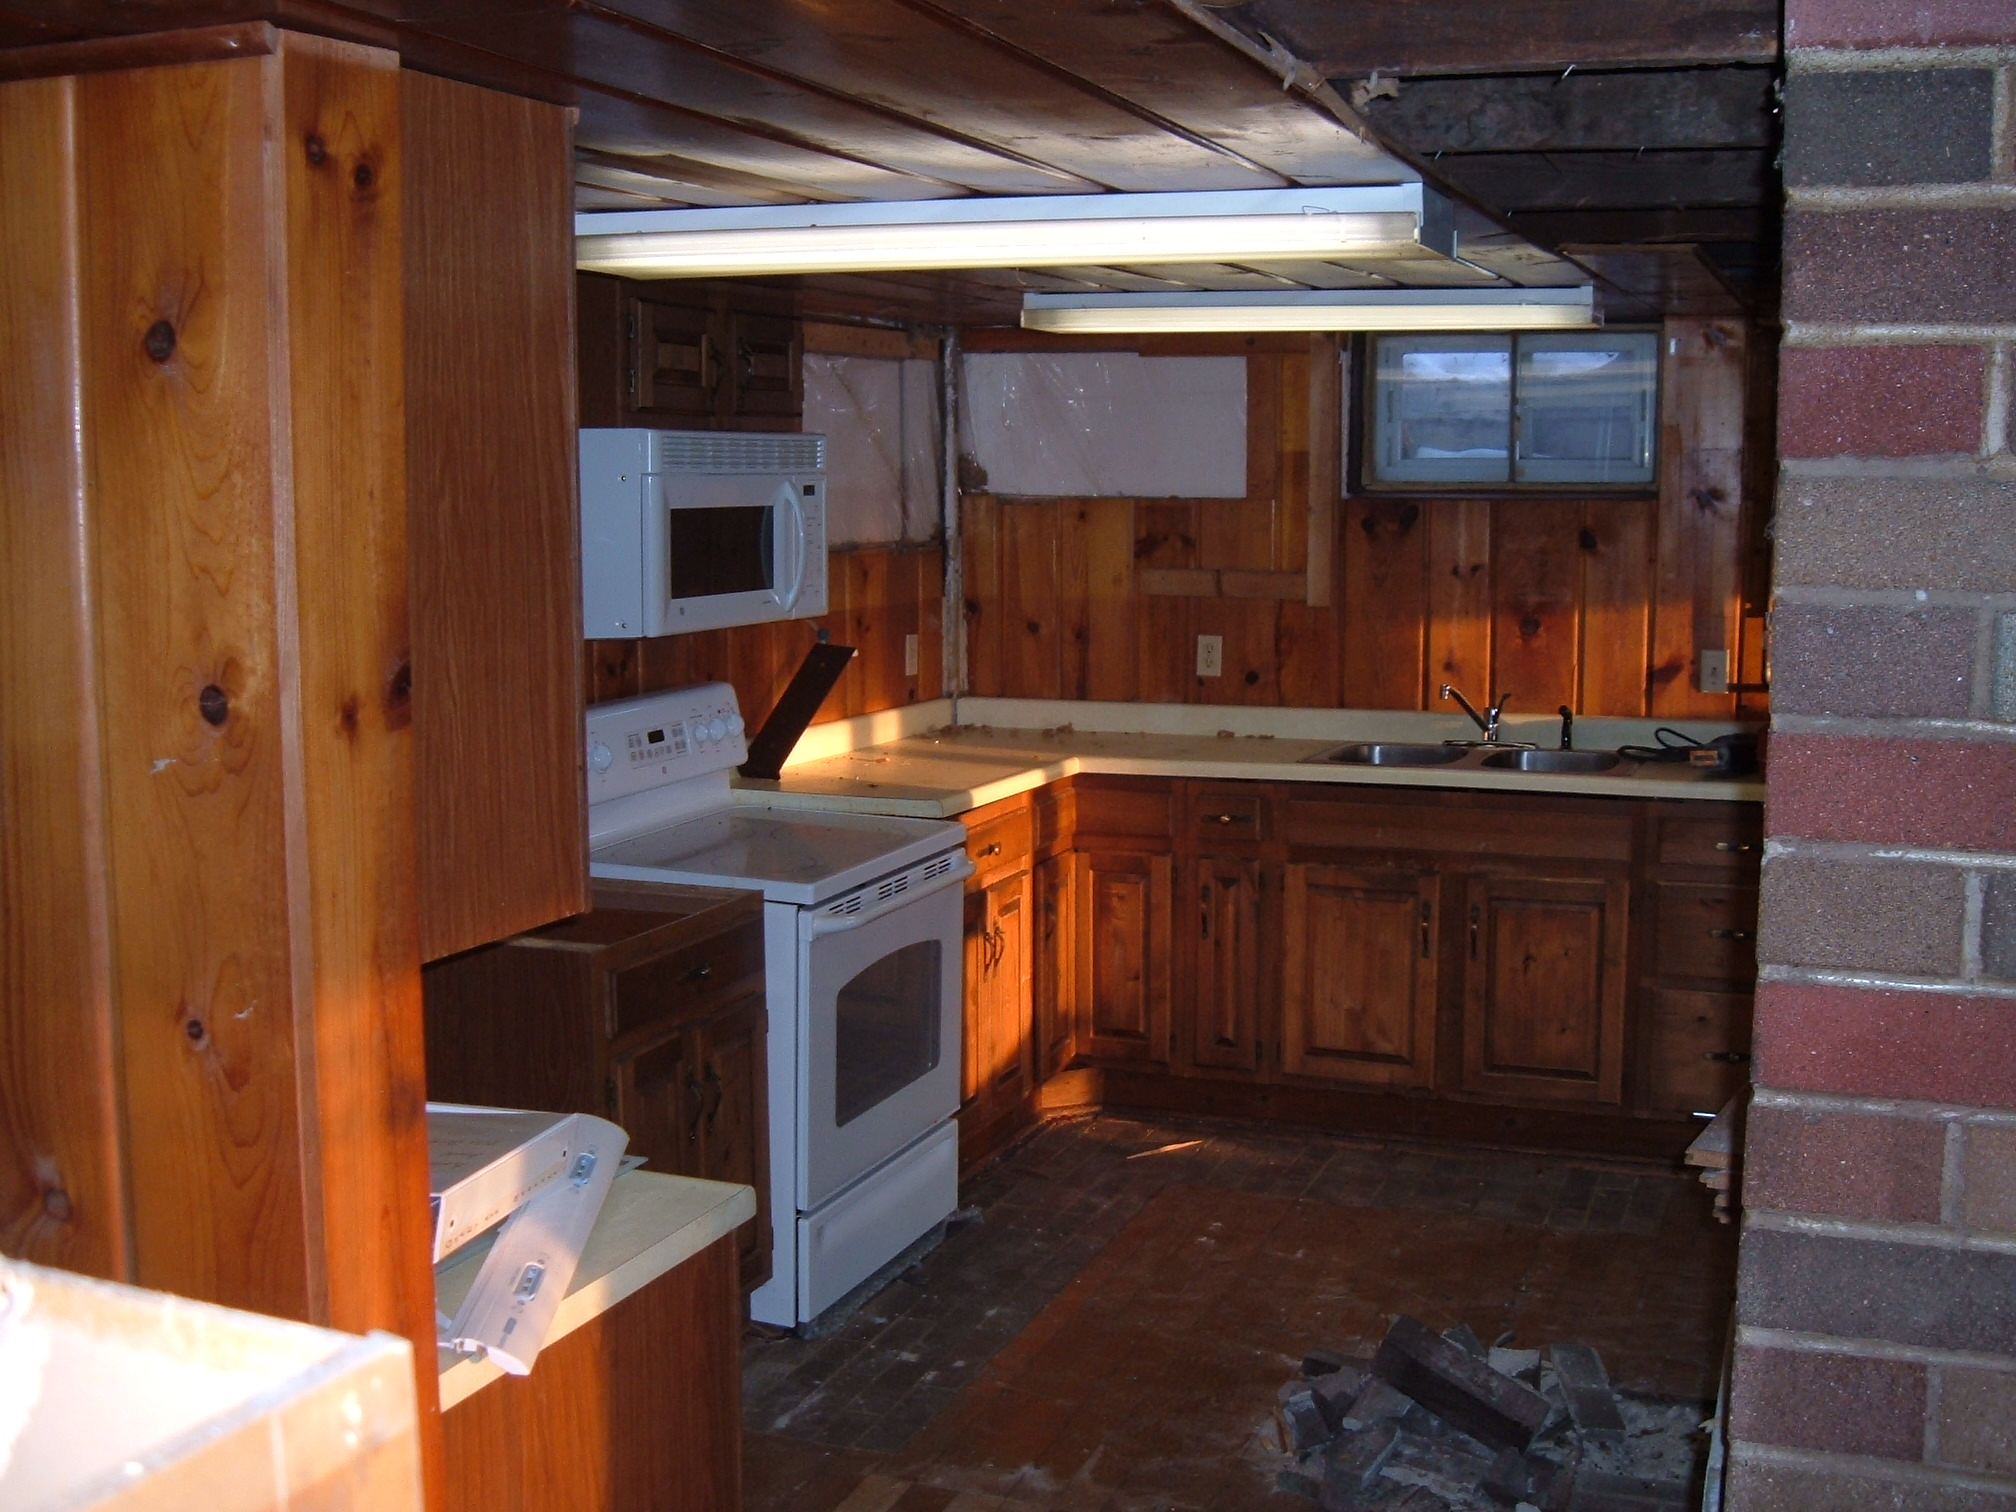 Kitchen remodel what to know before you start porch advice for When remodeling a kitchen where to start